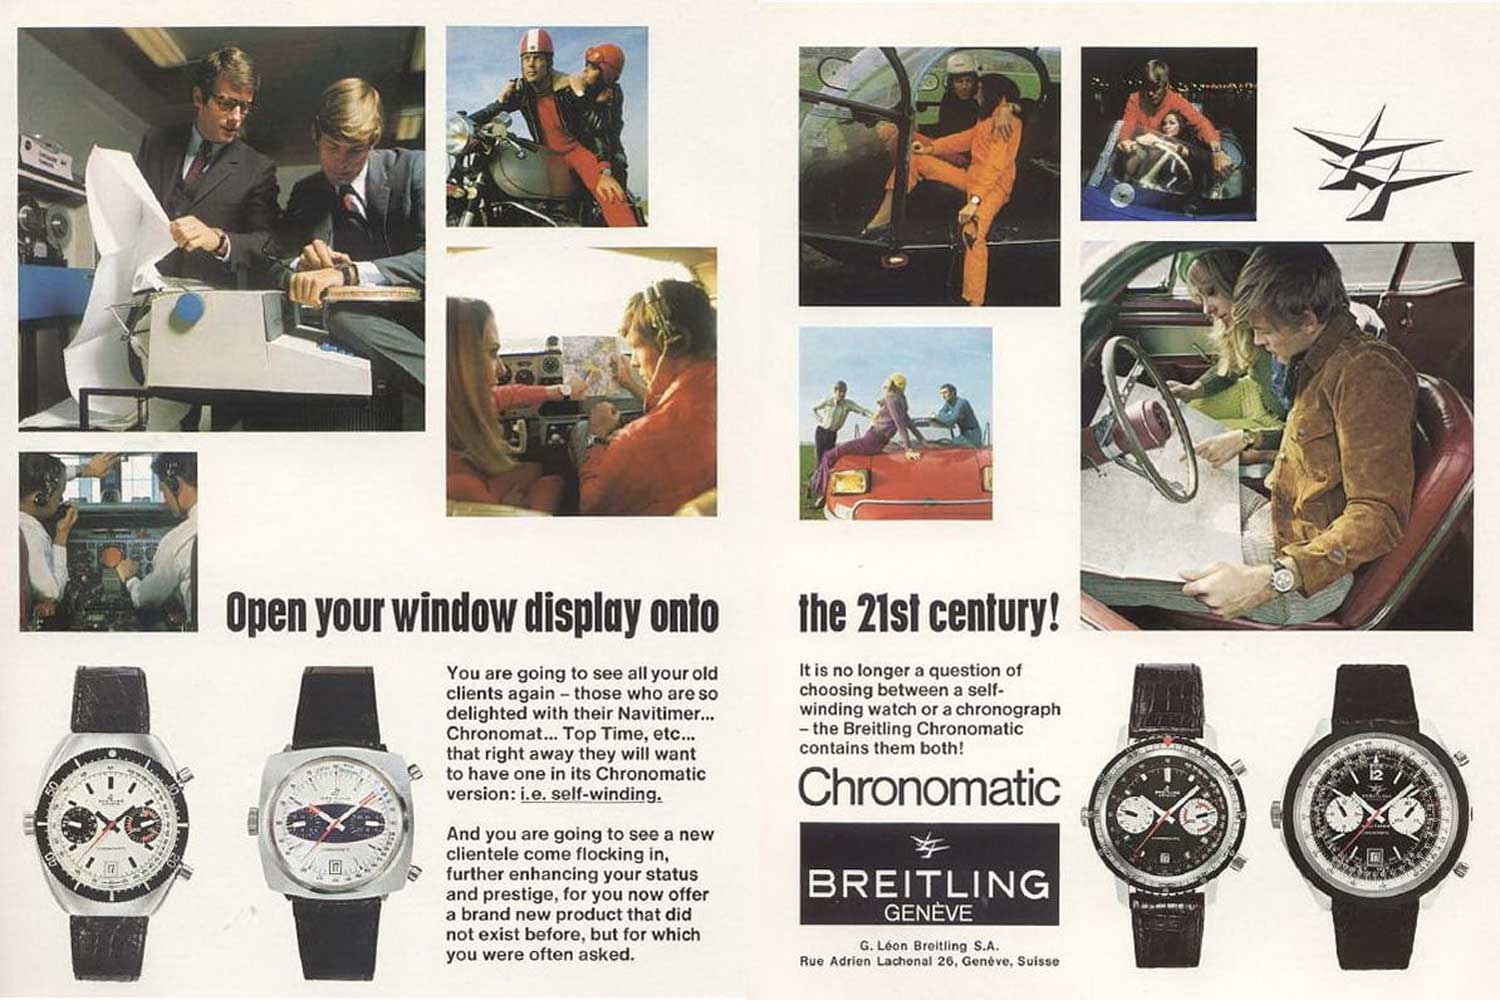 An old advertisement for Breitling's Chronomatics